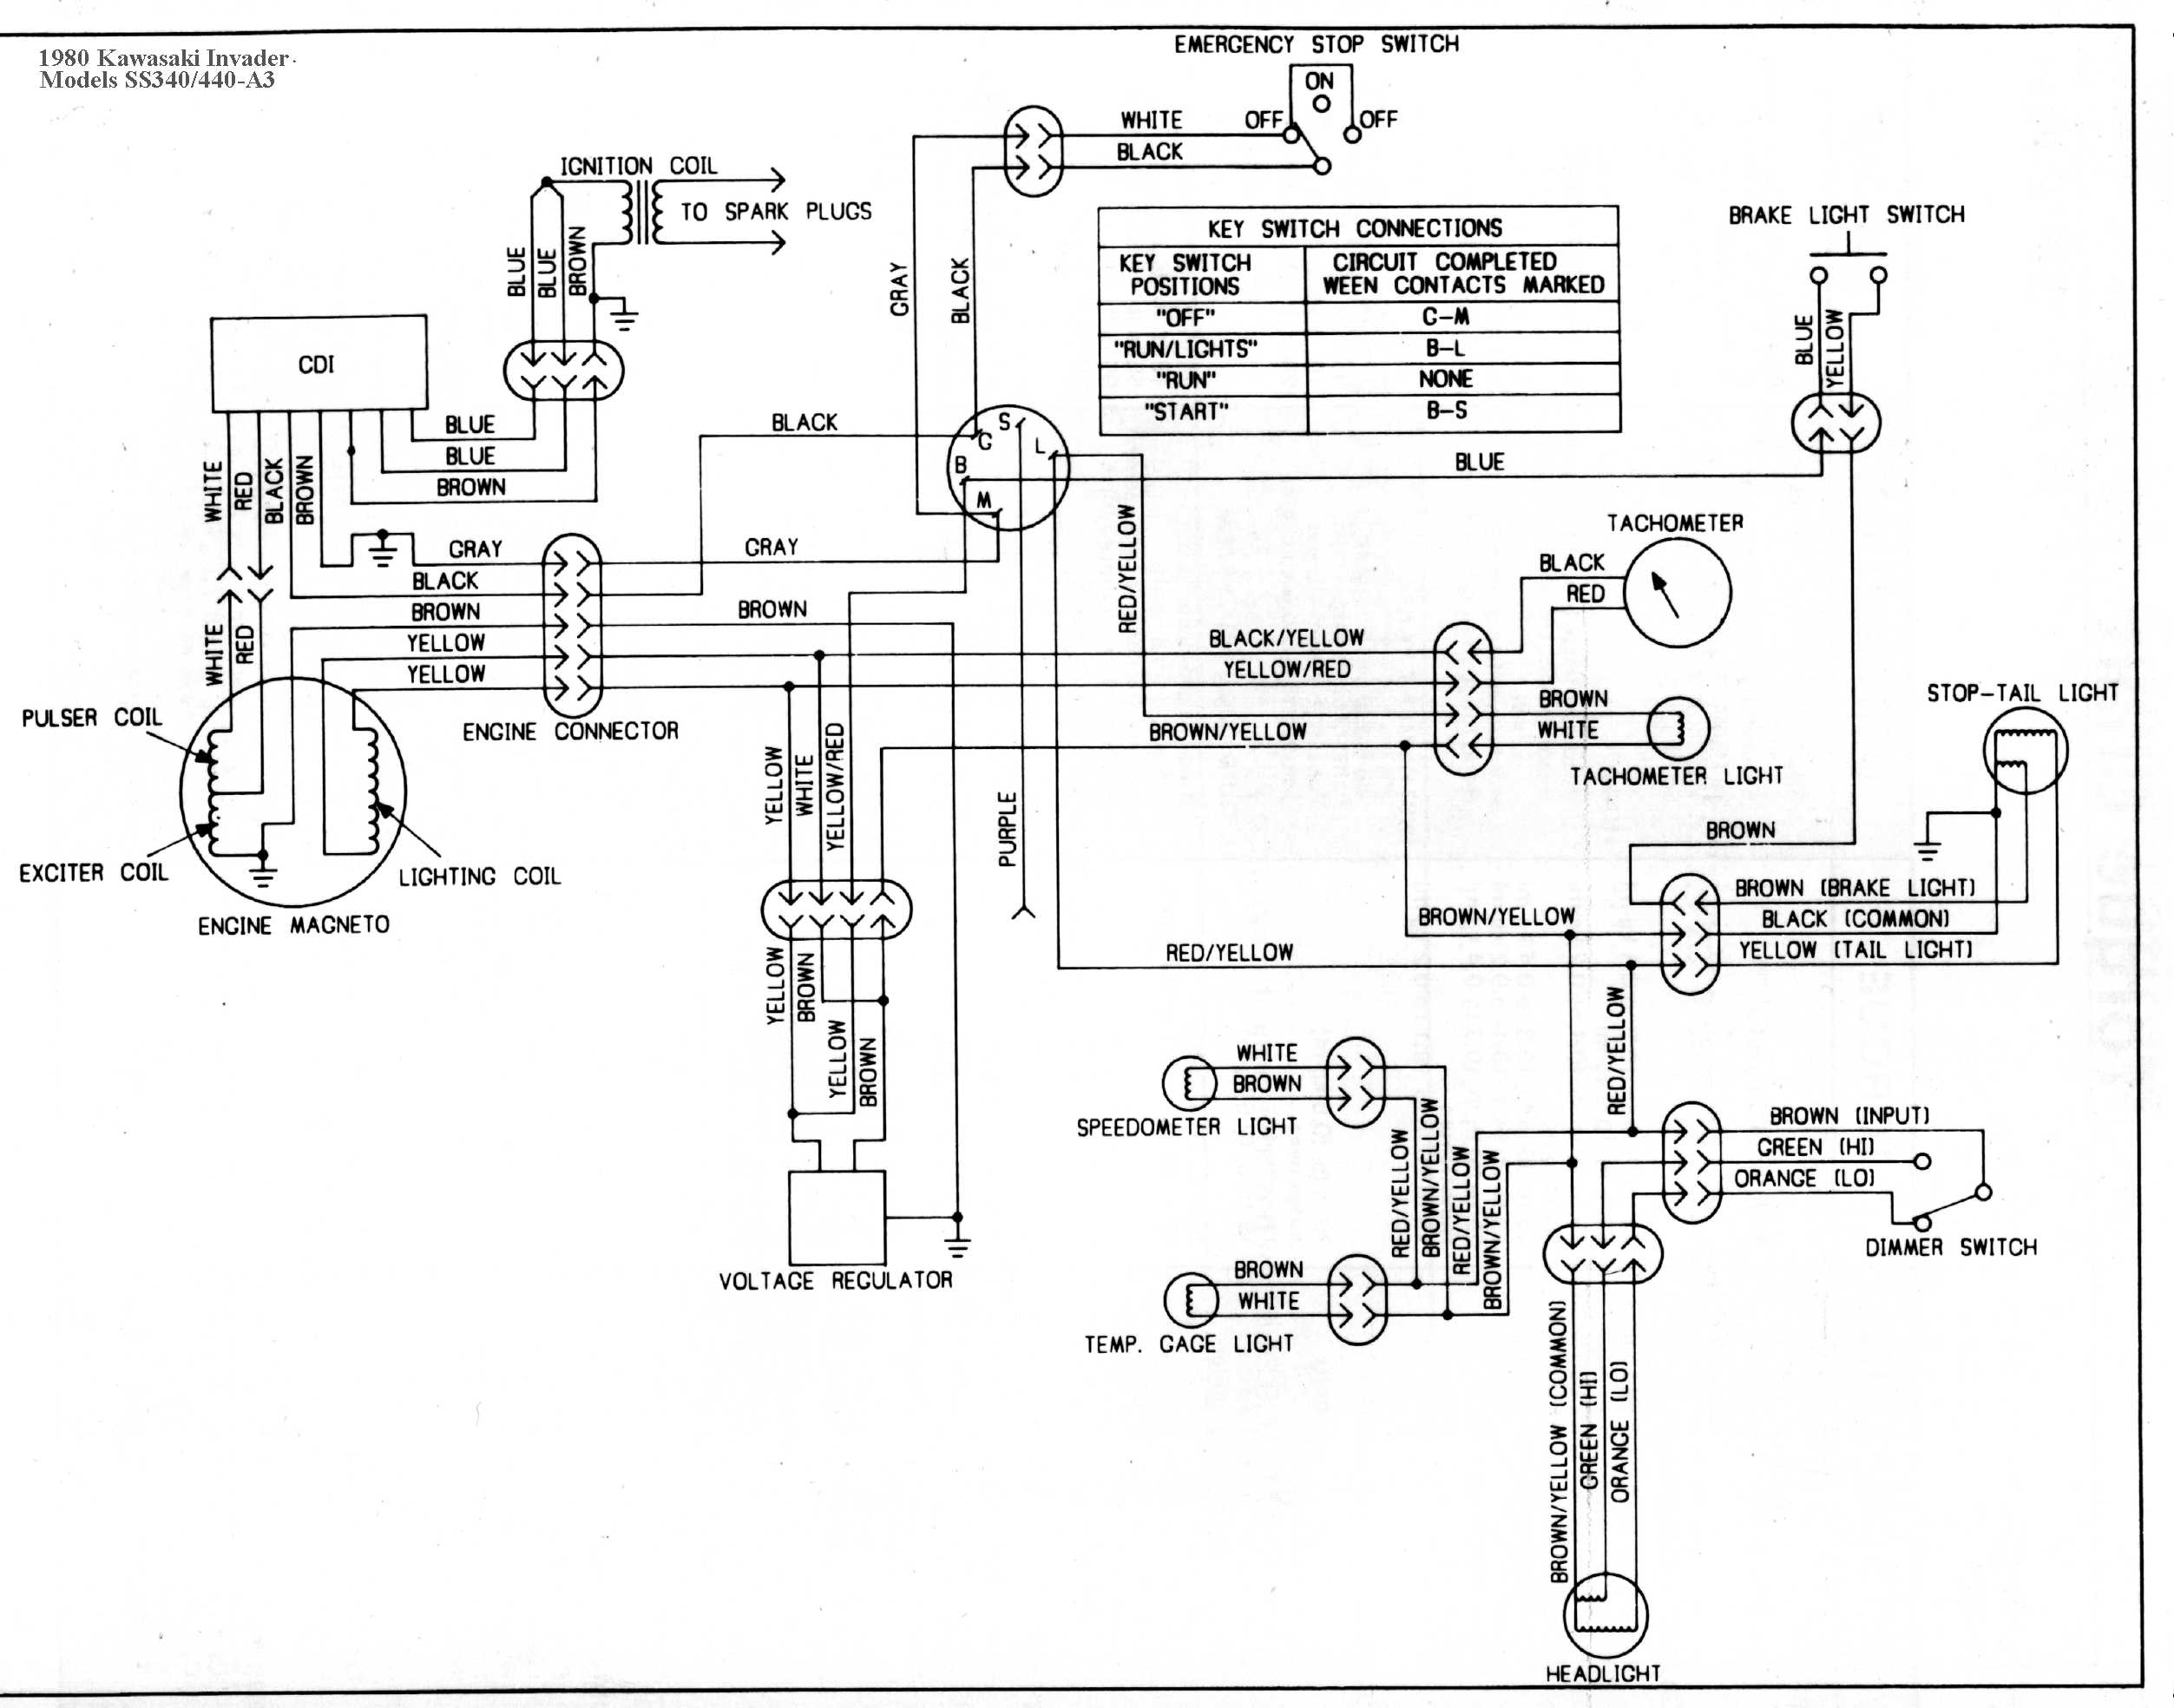 snowmobile wiring diagram wiring schematic diagram rh theodocle fion com